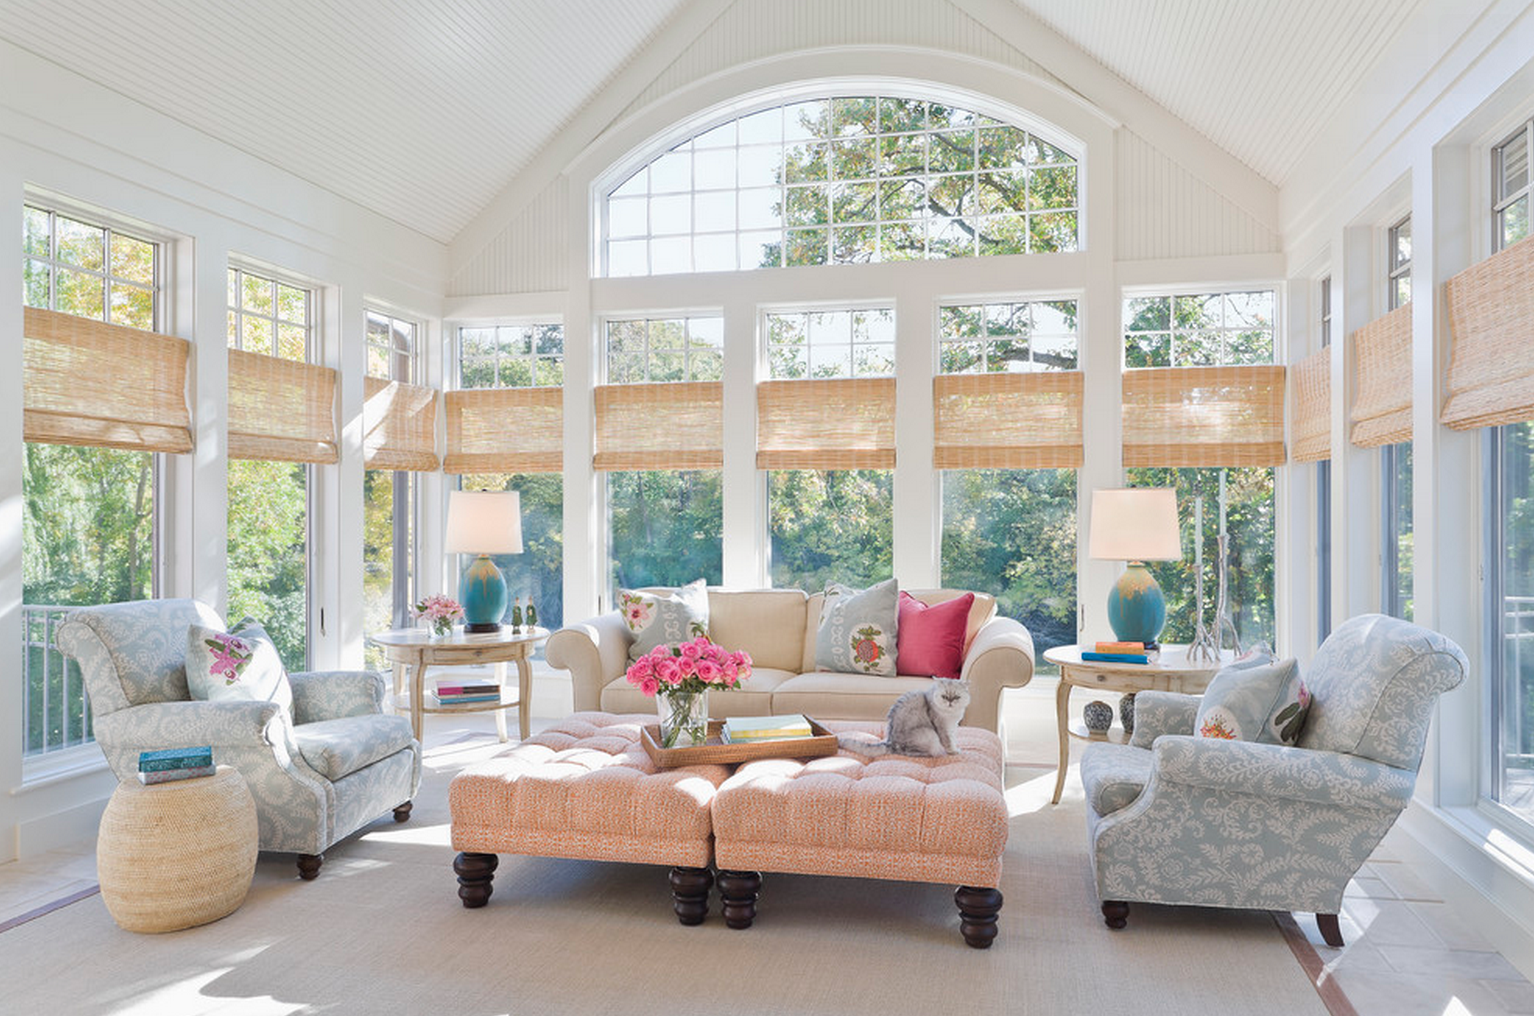 Window ideas for a sunroom   sided window and raised ceiling  new house design  pinterest